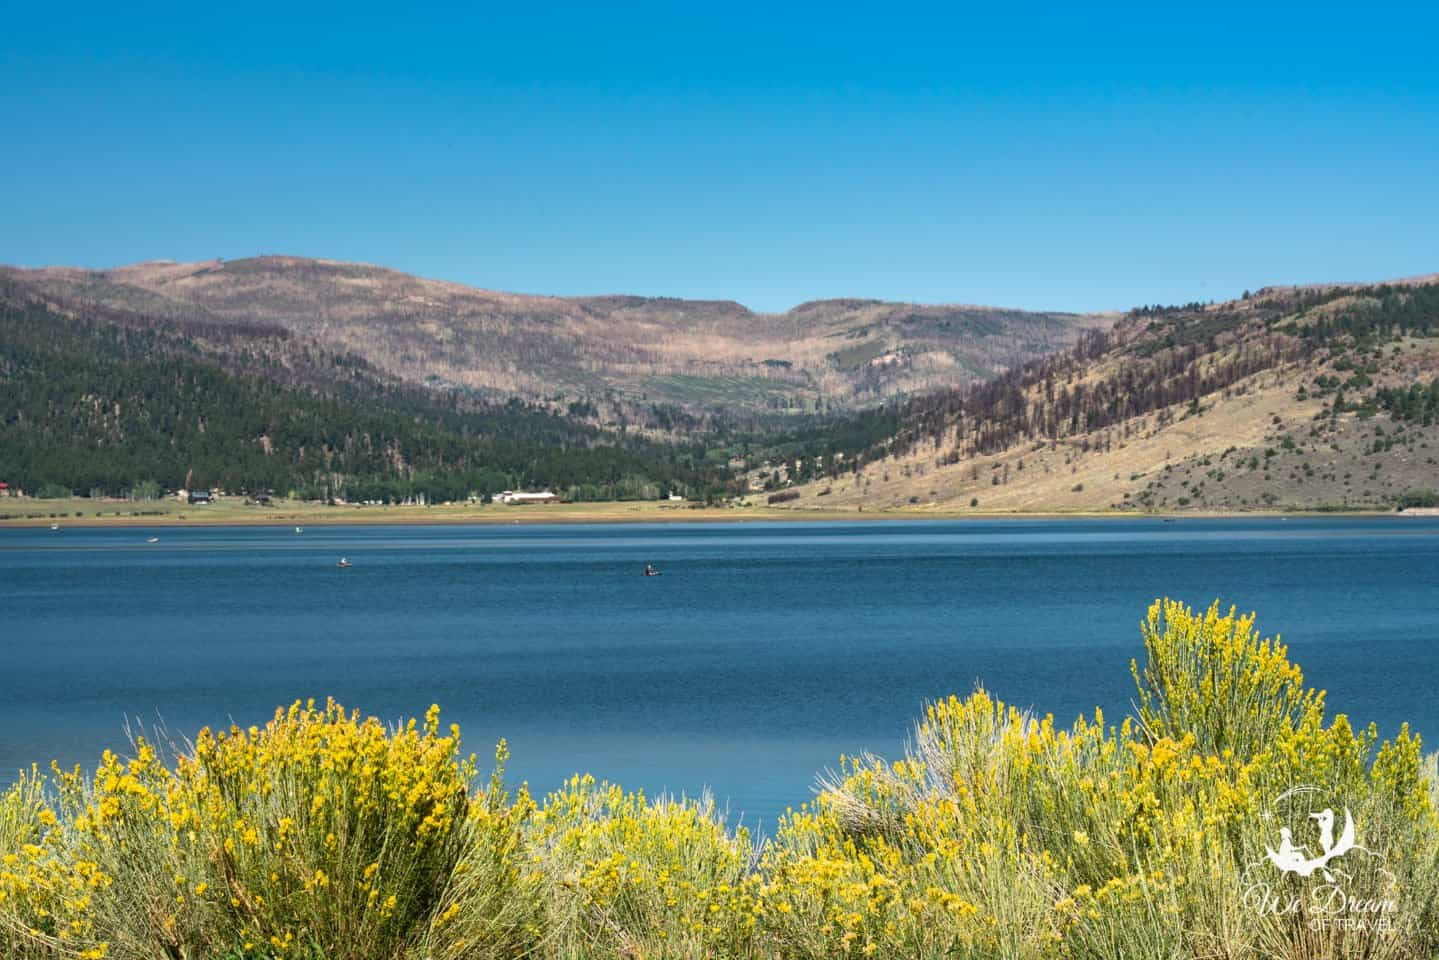 On your way out of the Dixie National Forest, stop by and enjoy the blue waters of Panguitch Lake.